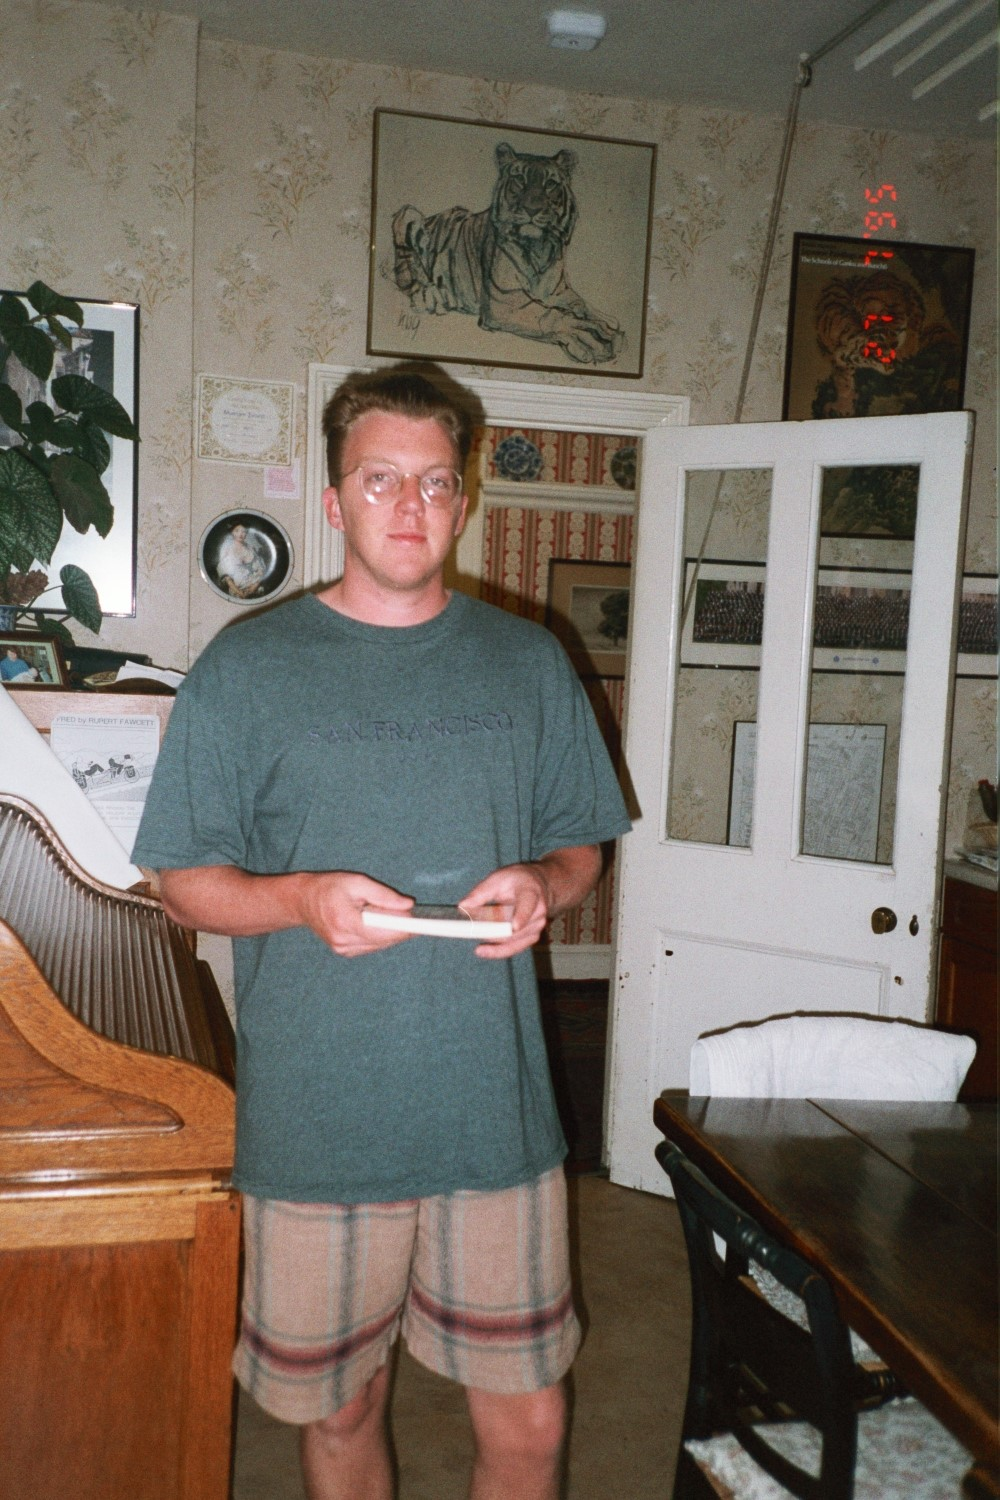 Matt Shearer, Summer 1995